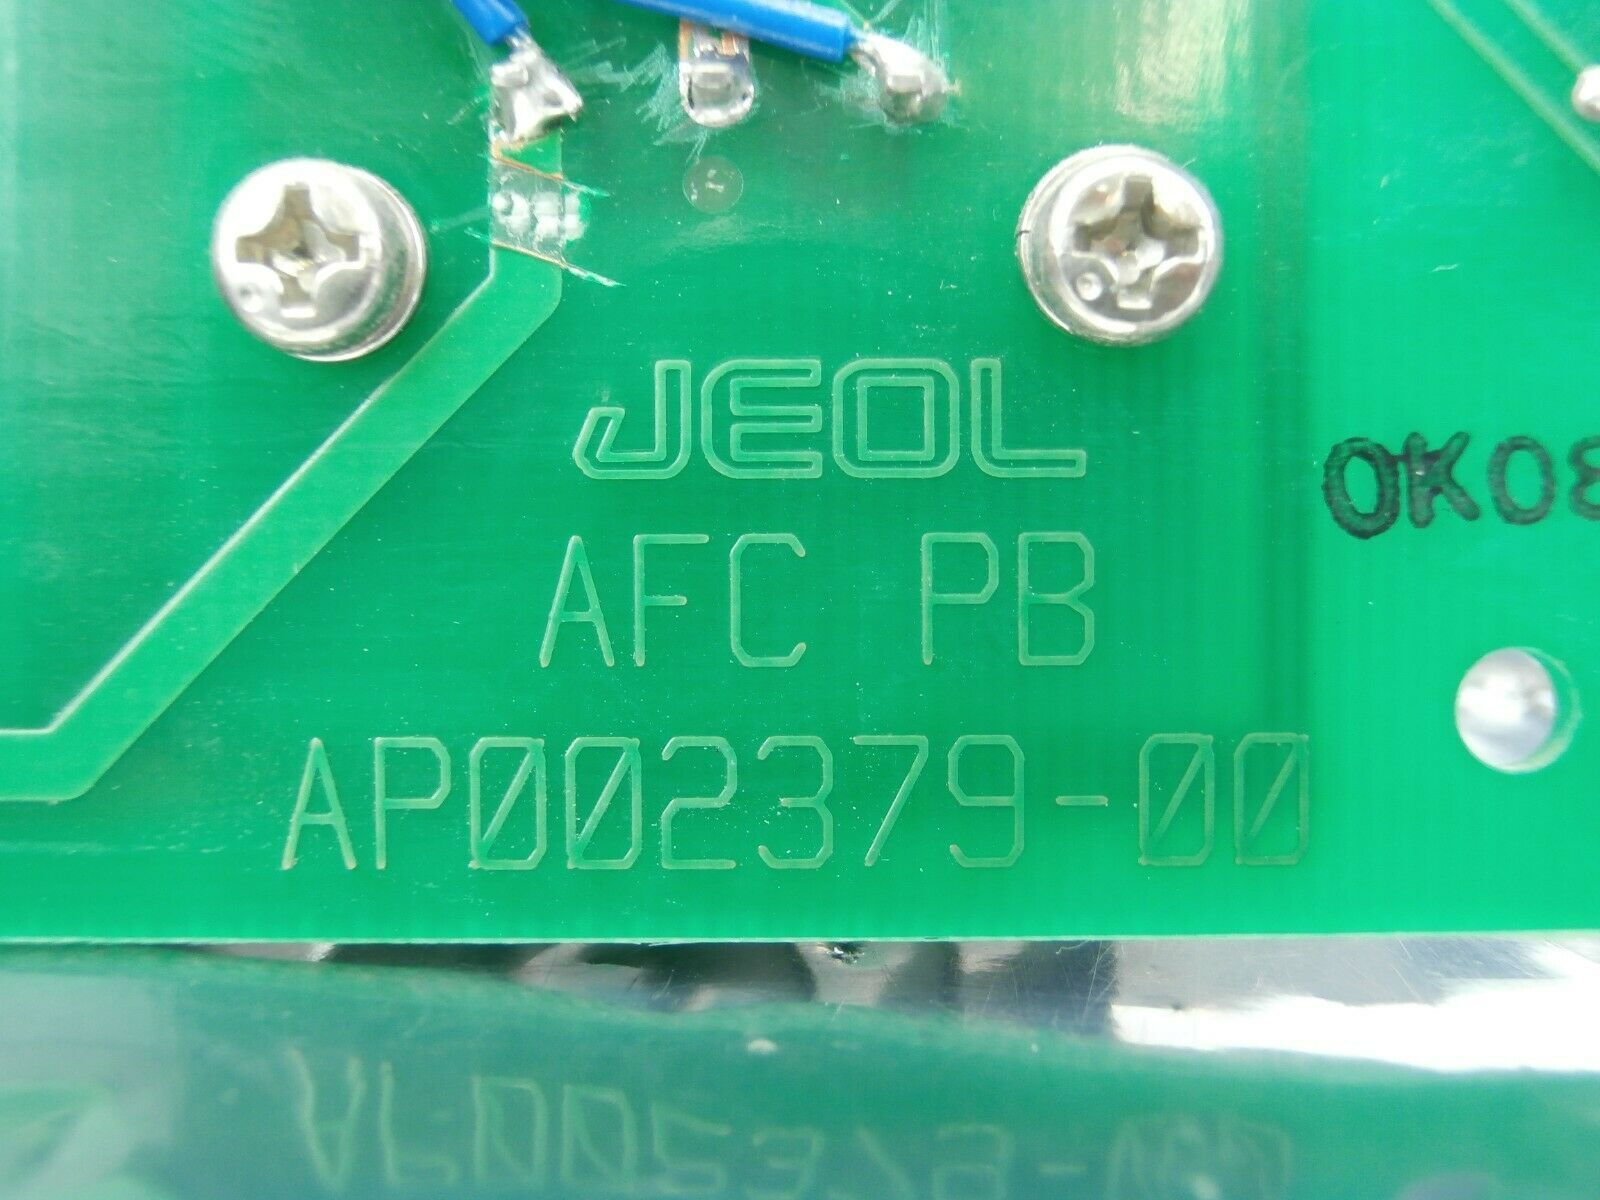 JEOL AP002379-00 Processor Board PCB Card AFC PB TN JSM-6400F Used Working